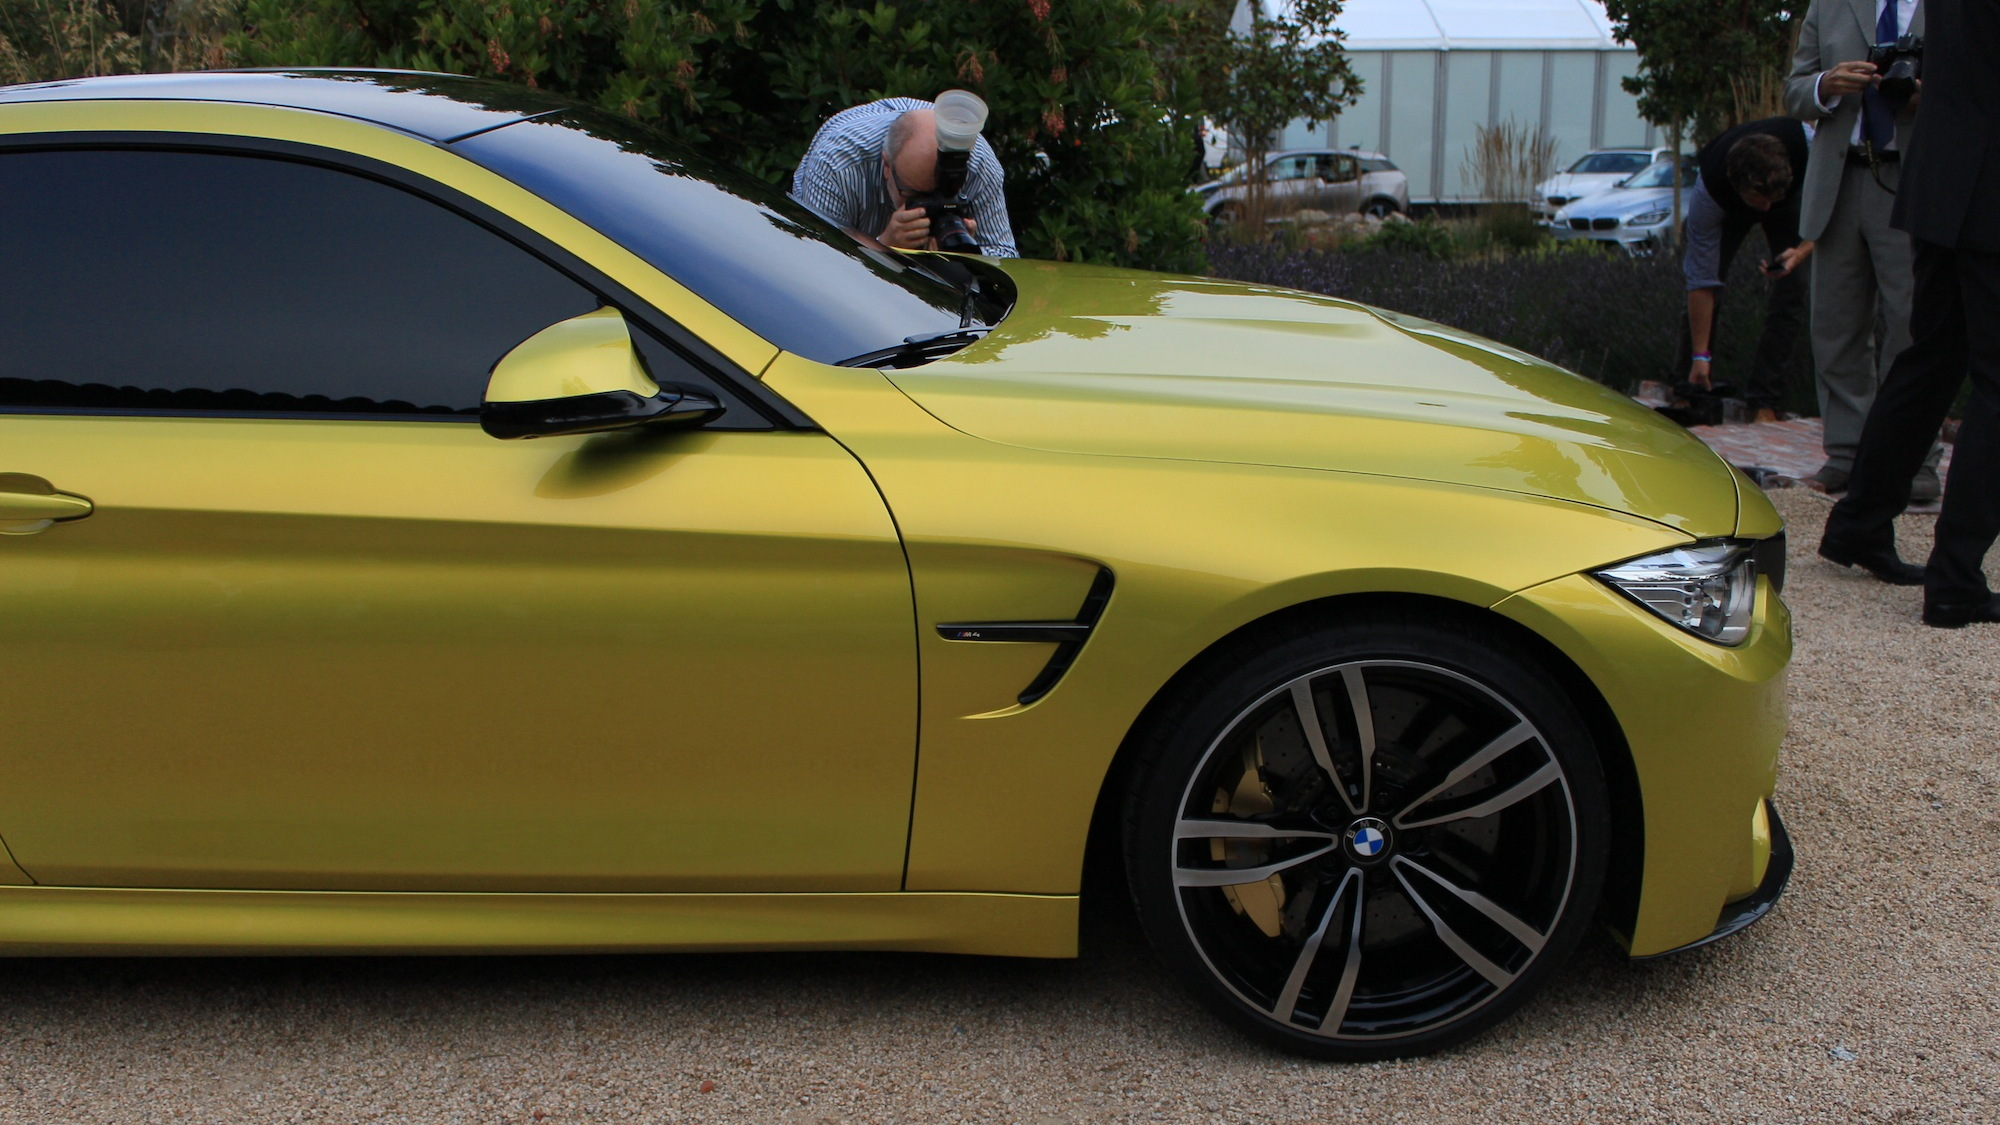 BMW Concept M4 Coupe live photos, Pebble Beach, 2013